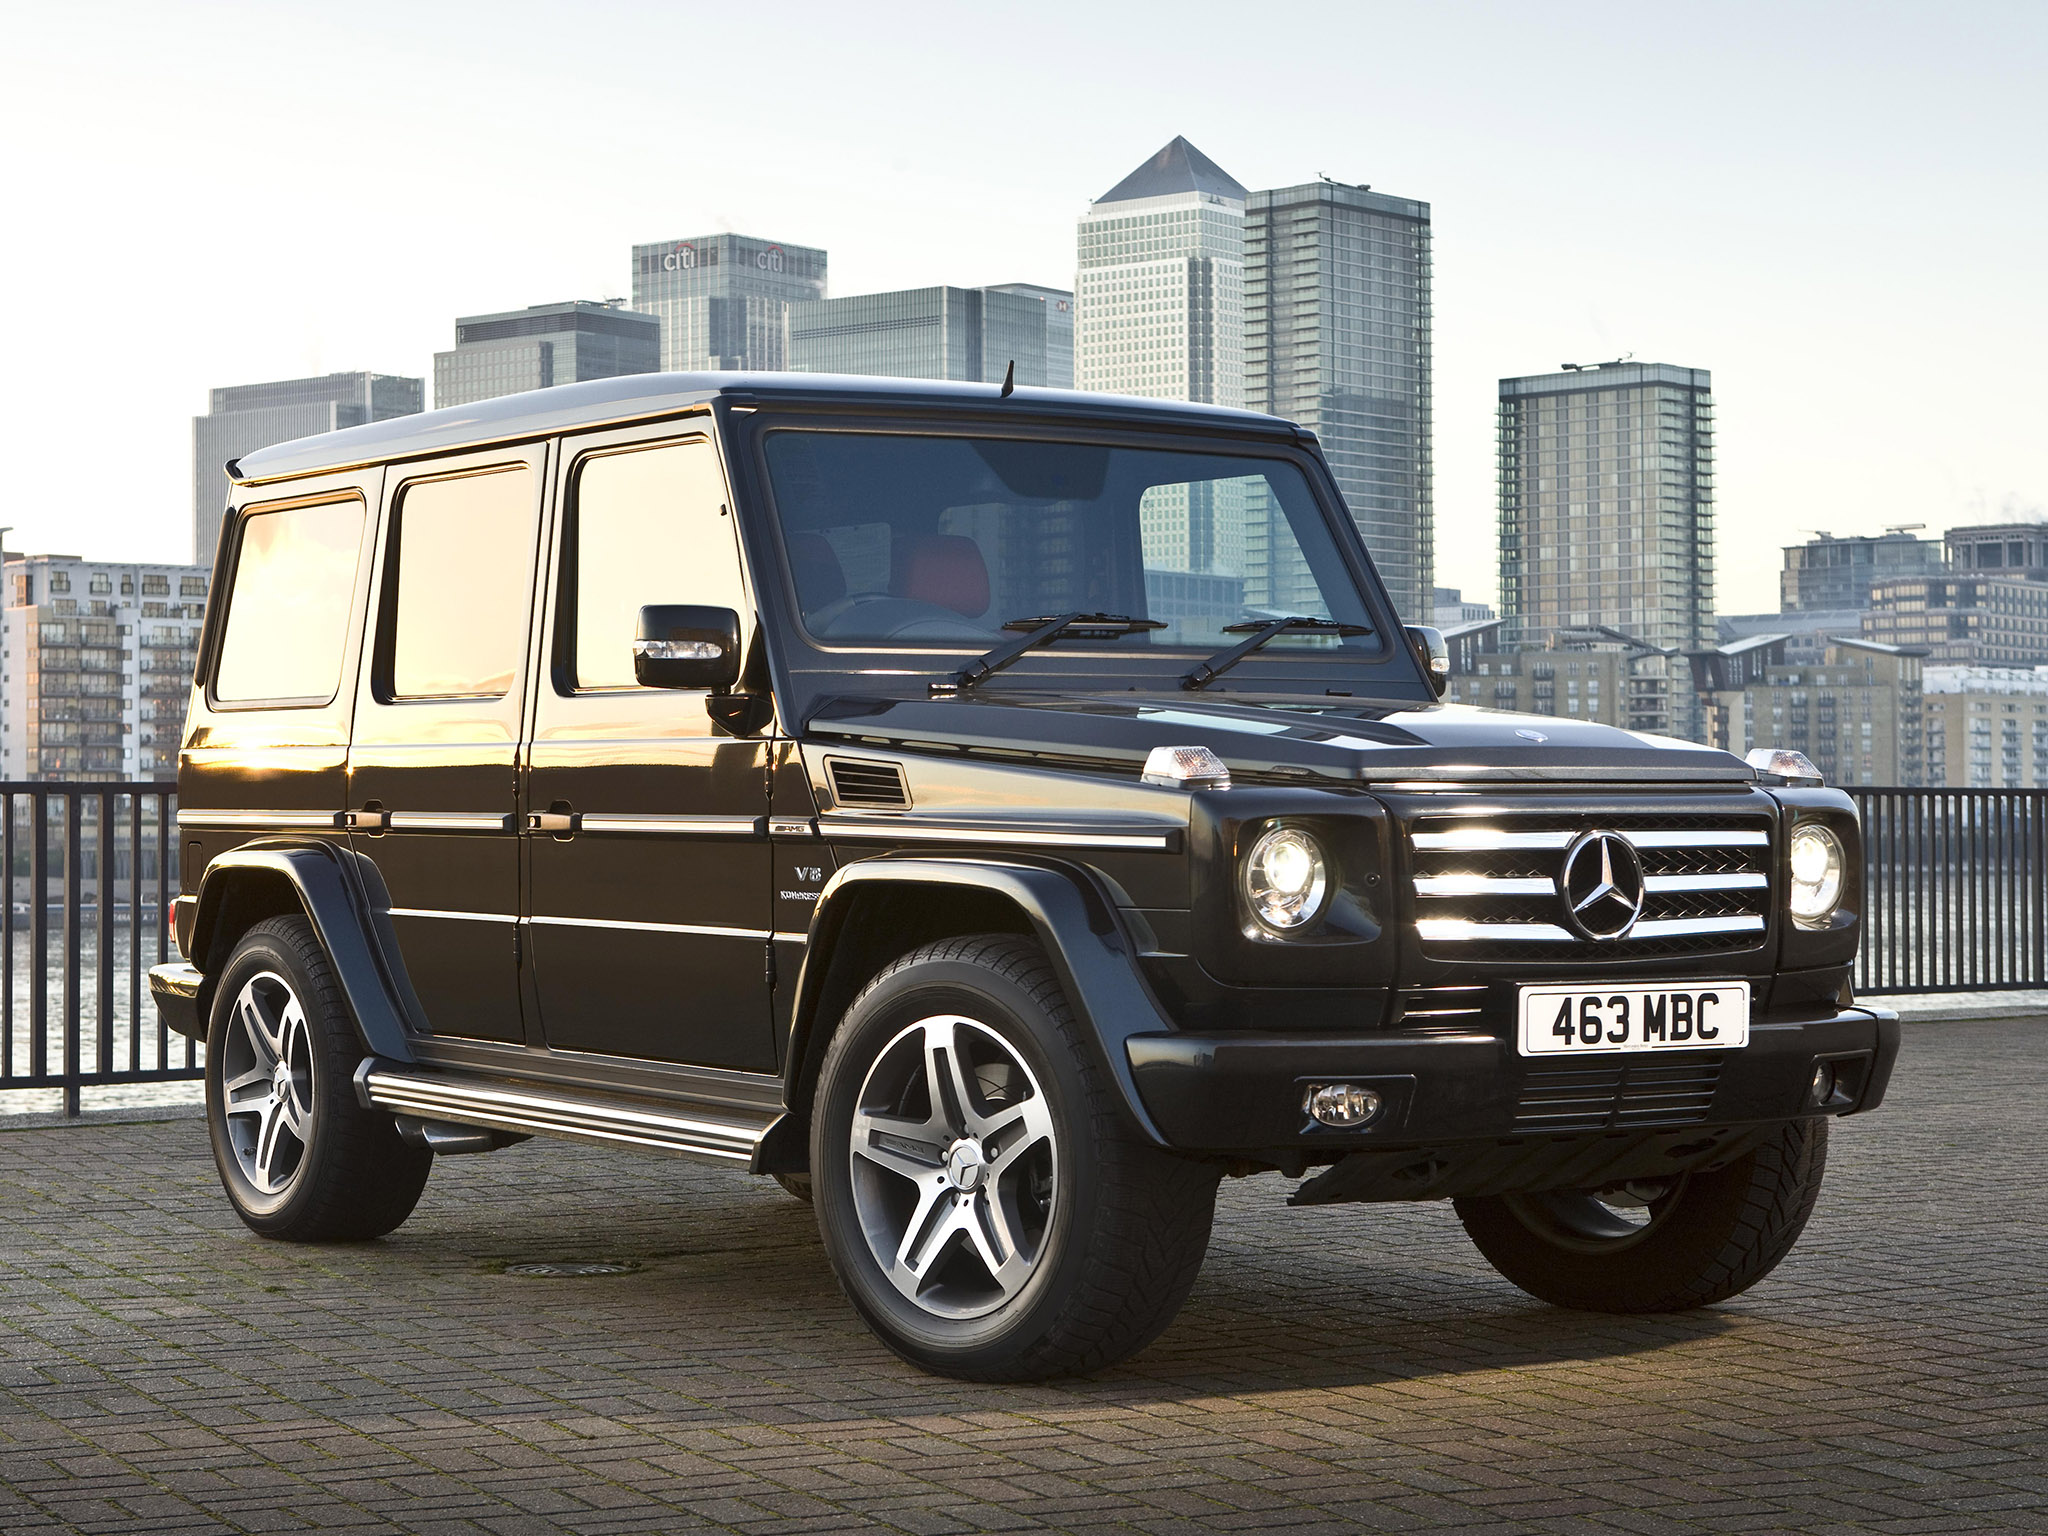 amg mercedes g klasse g55 uk 2010 amg mercedes g klasse g55 uk 2010 photo 01 car in pictures. Black Bedroom Furniture Sets. Home Design Ideas